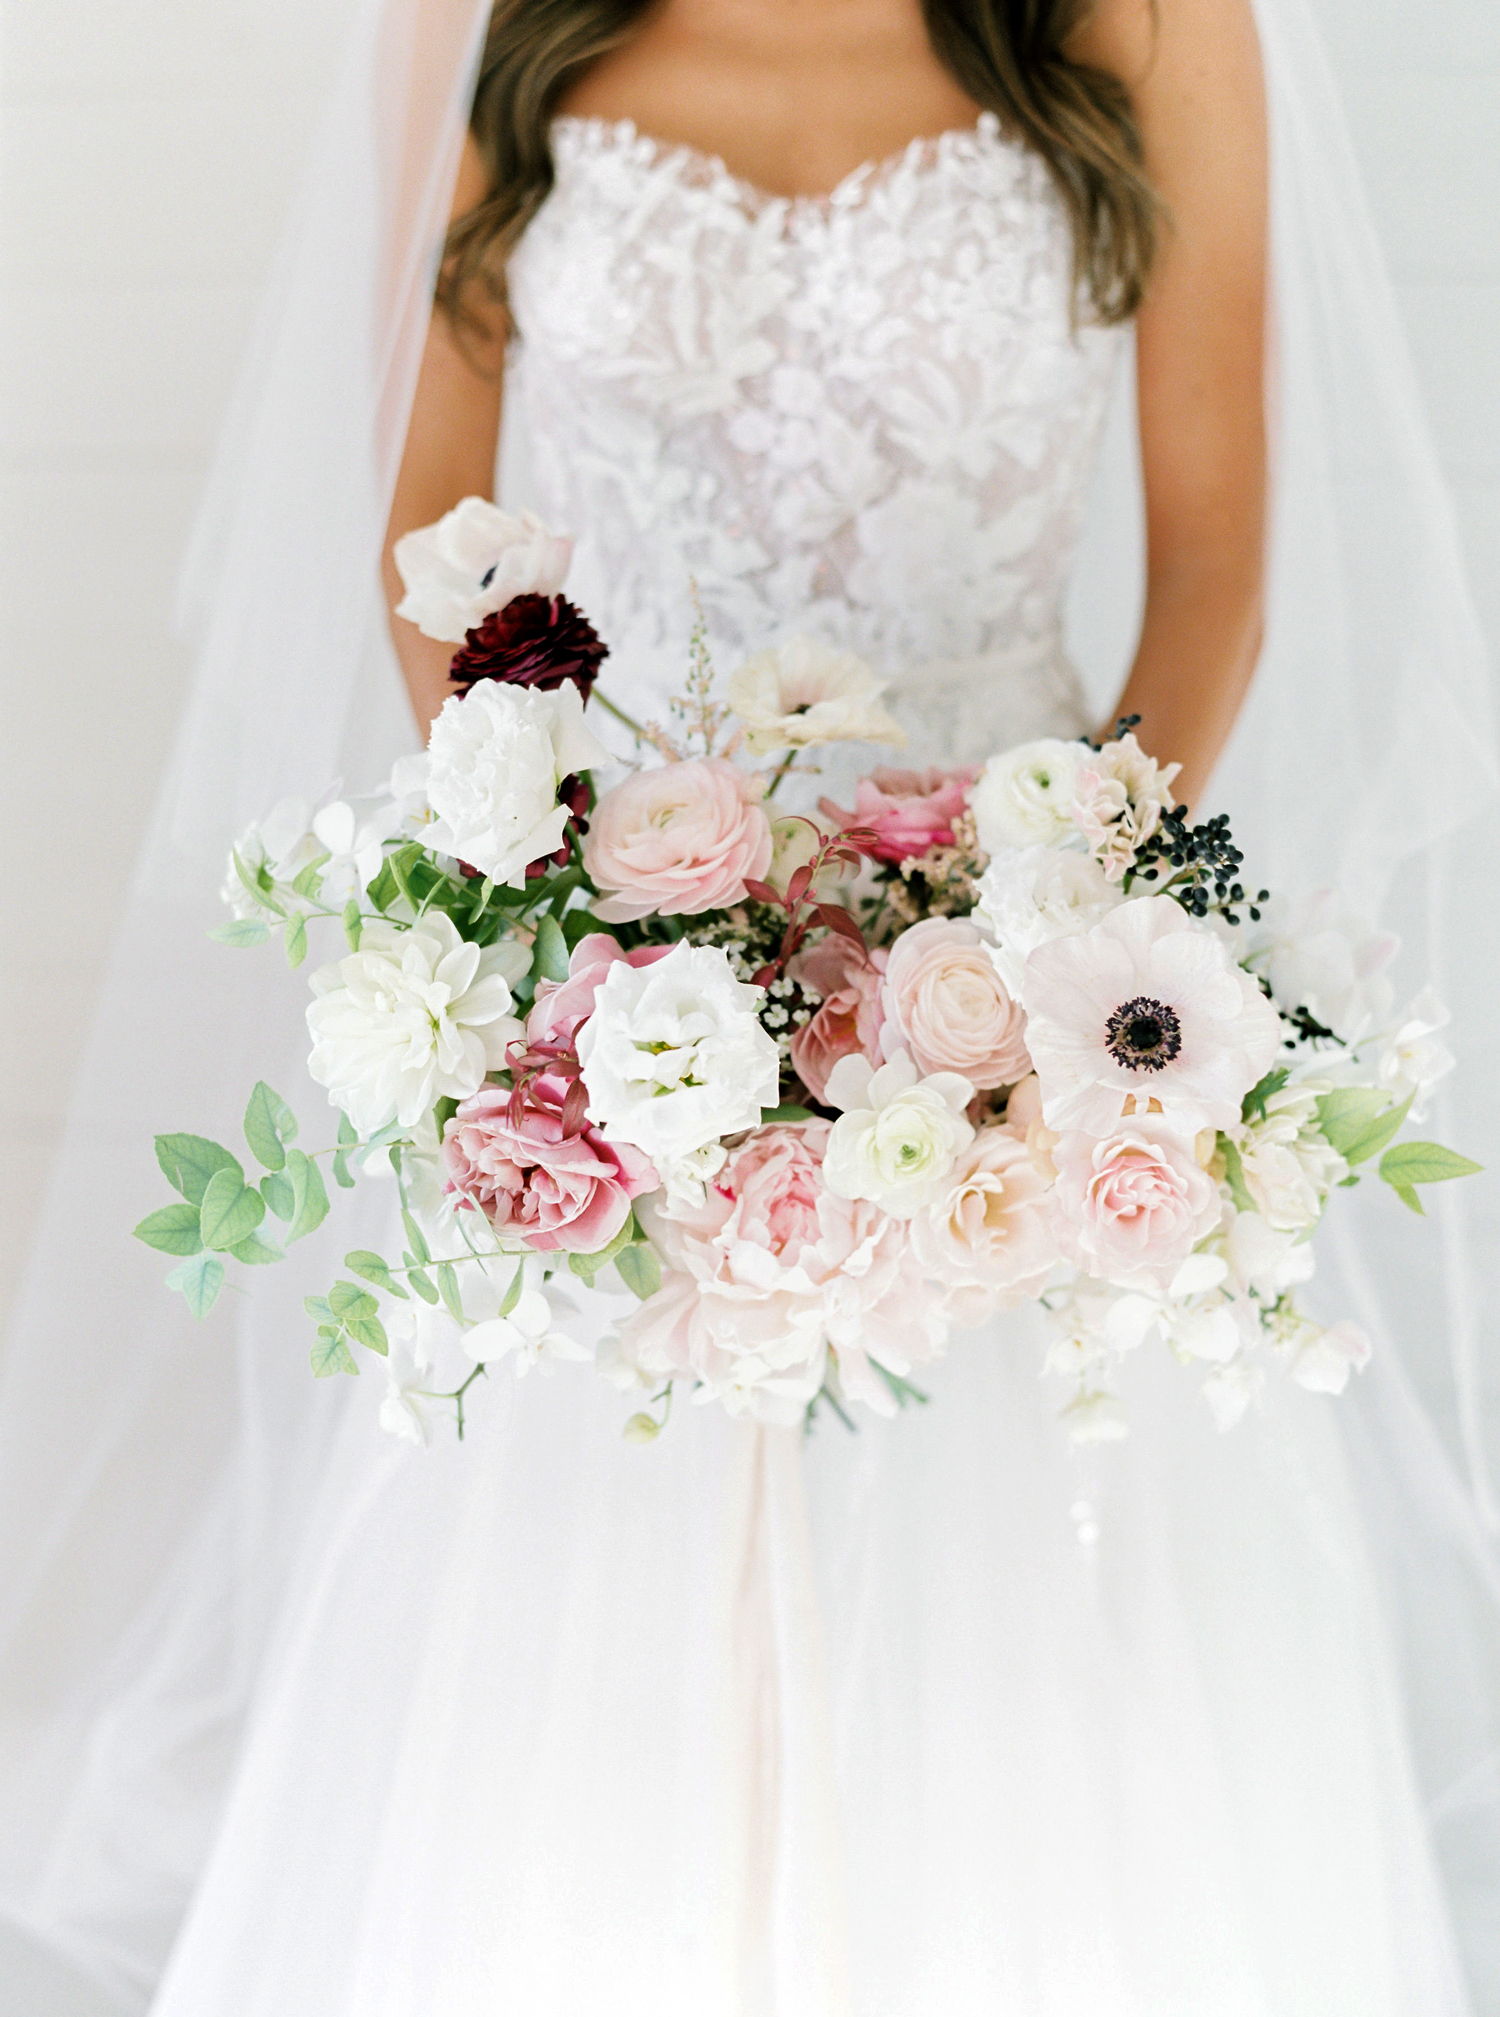 four varieties of roses with anemones, ranunculus, and lisianthus bridal bouquet